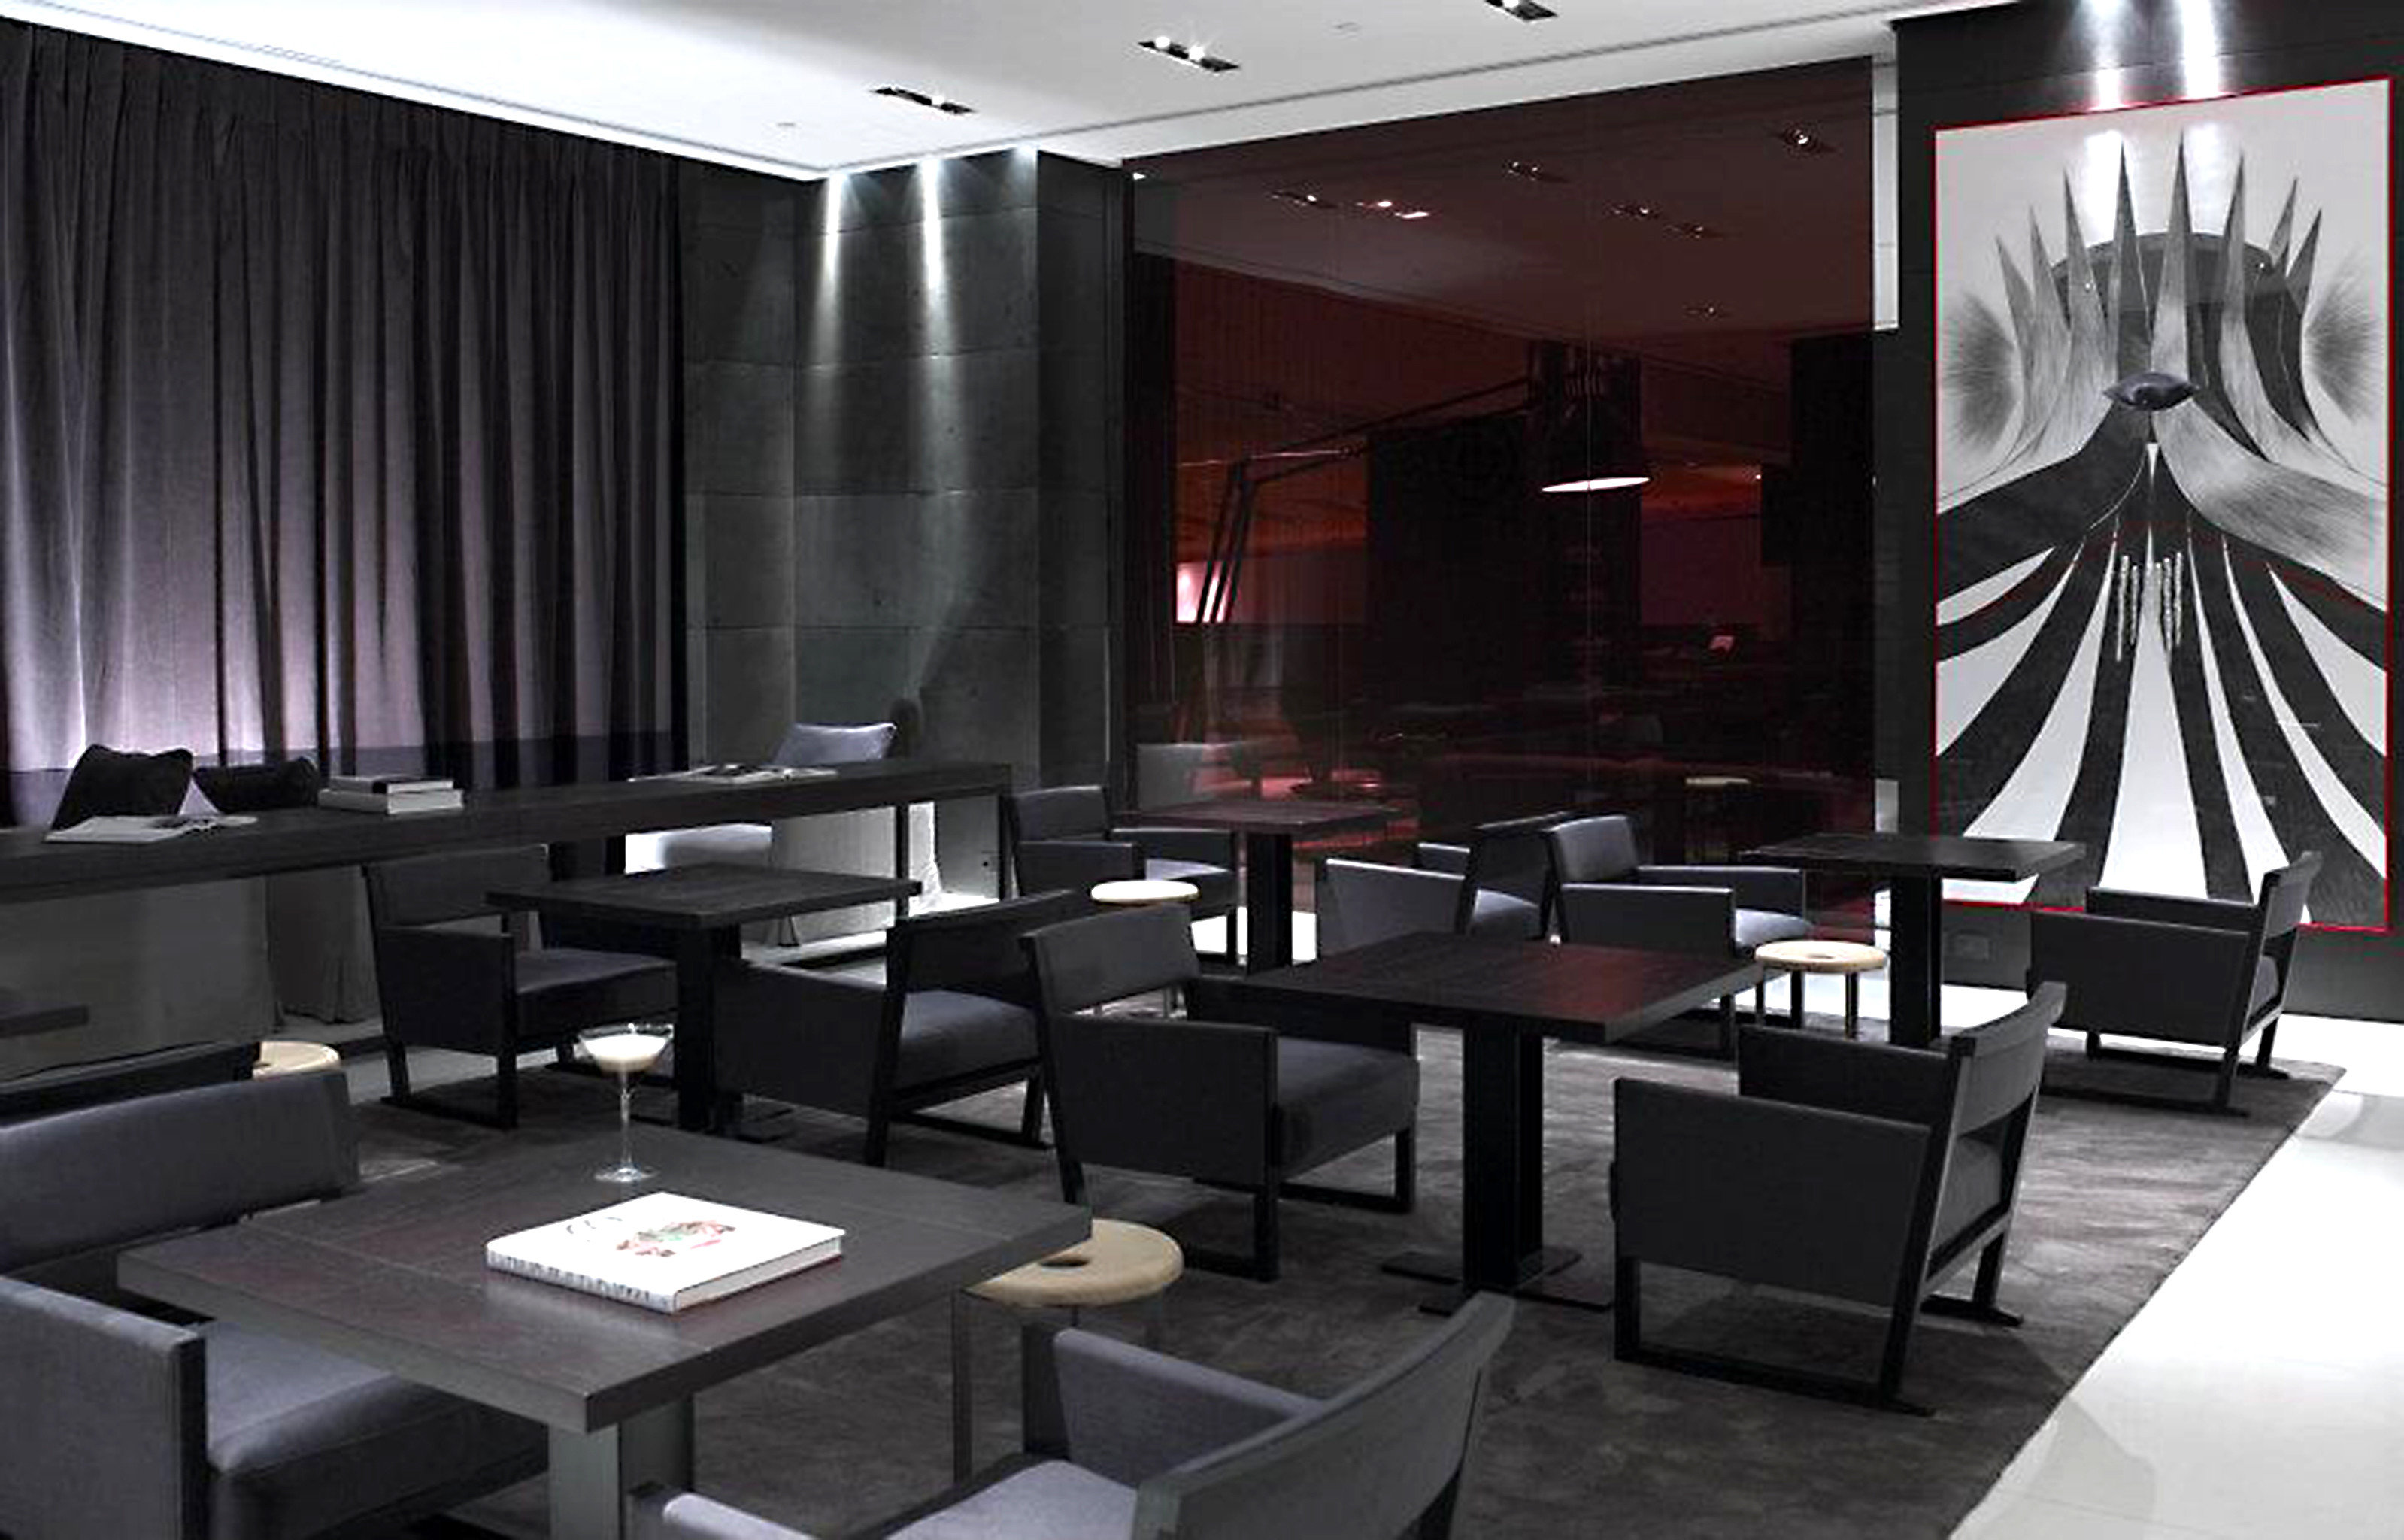 Bar Dining Drink Eat Hip Luxury conference hall auditorium function hall convention center Lobby restaurant